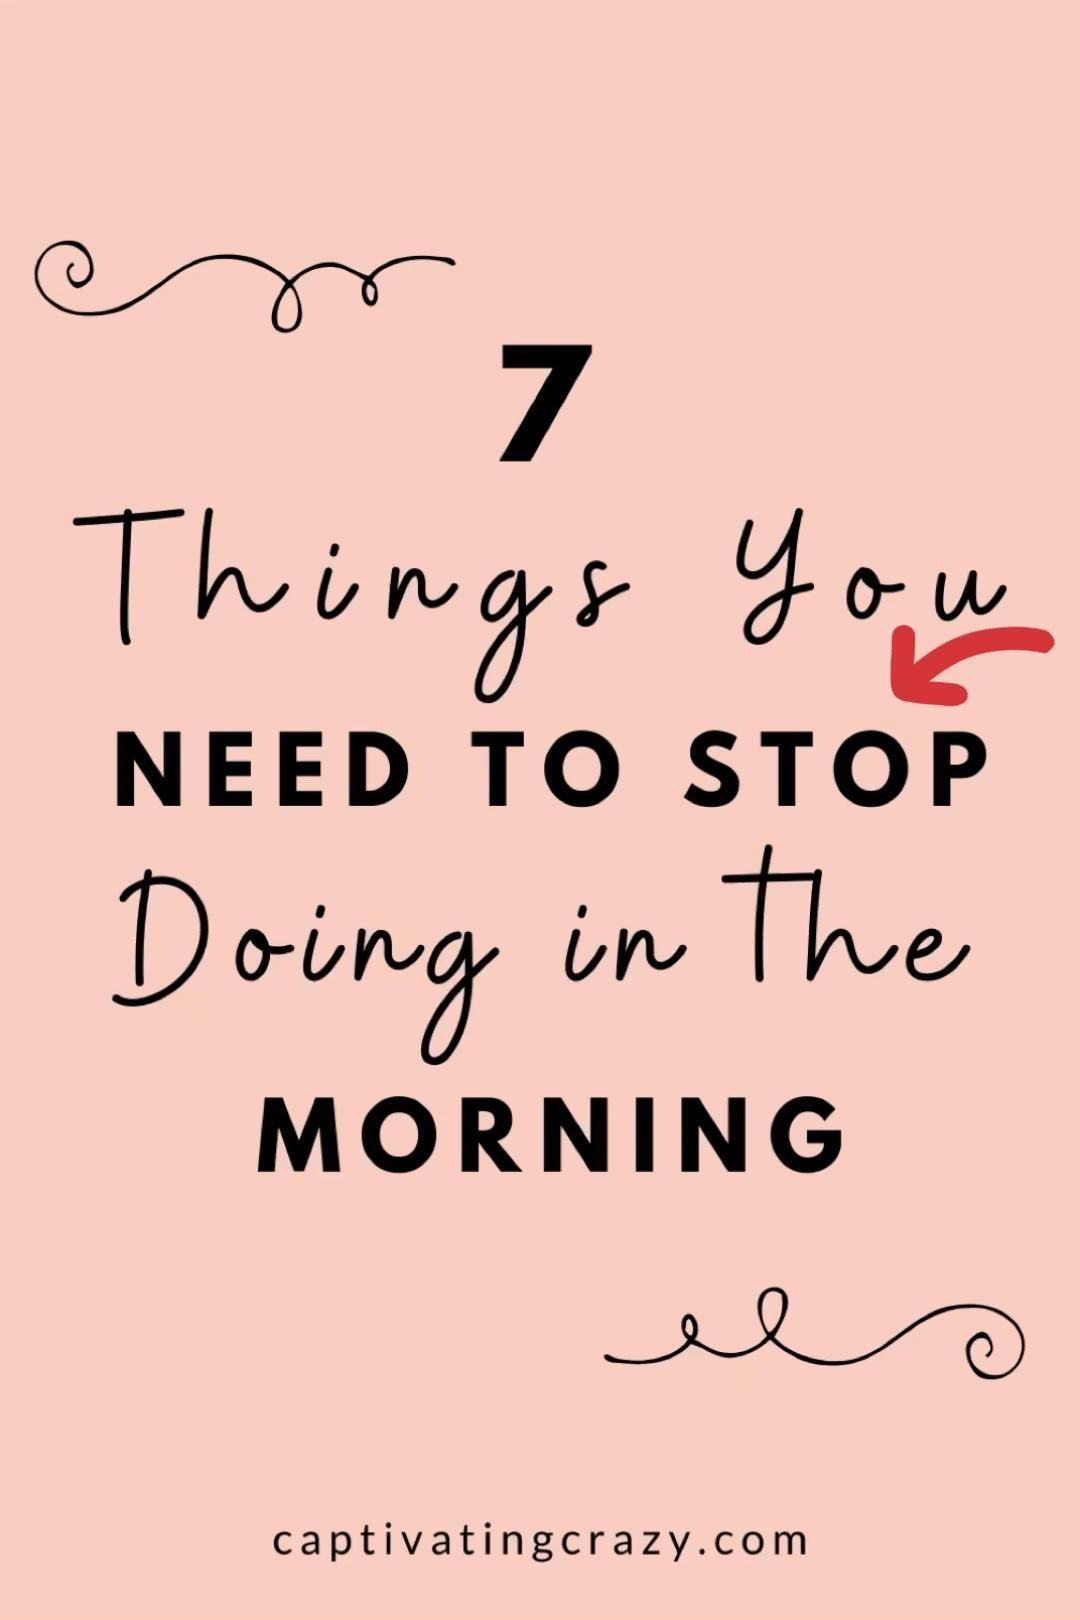 Top 7 Things You Absolutely Must Stop Doing In The Morning - Captivating Crazy